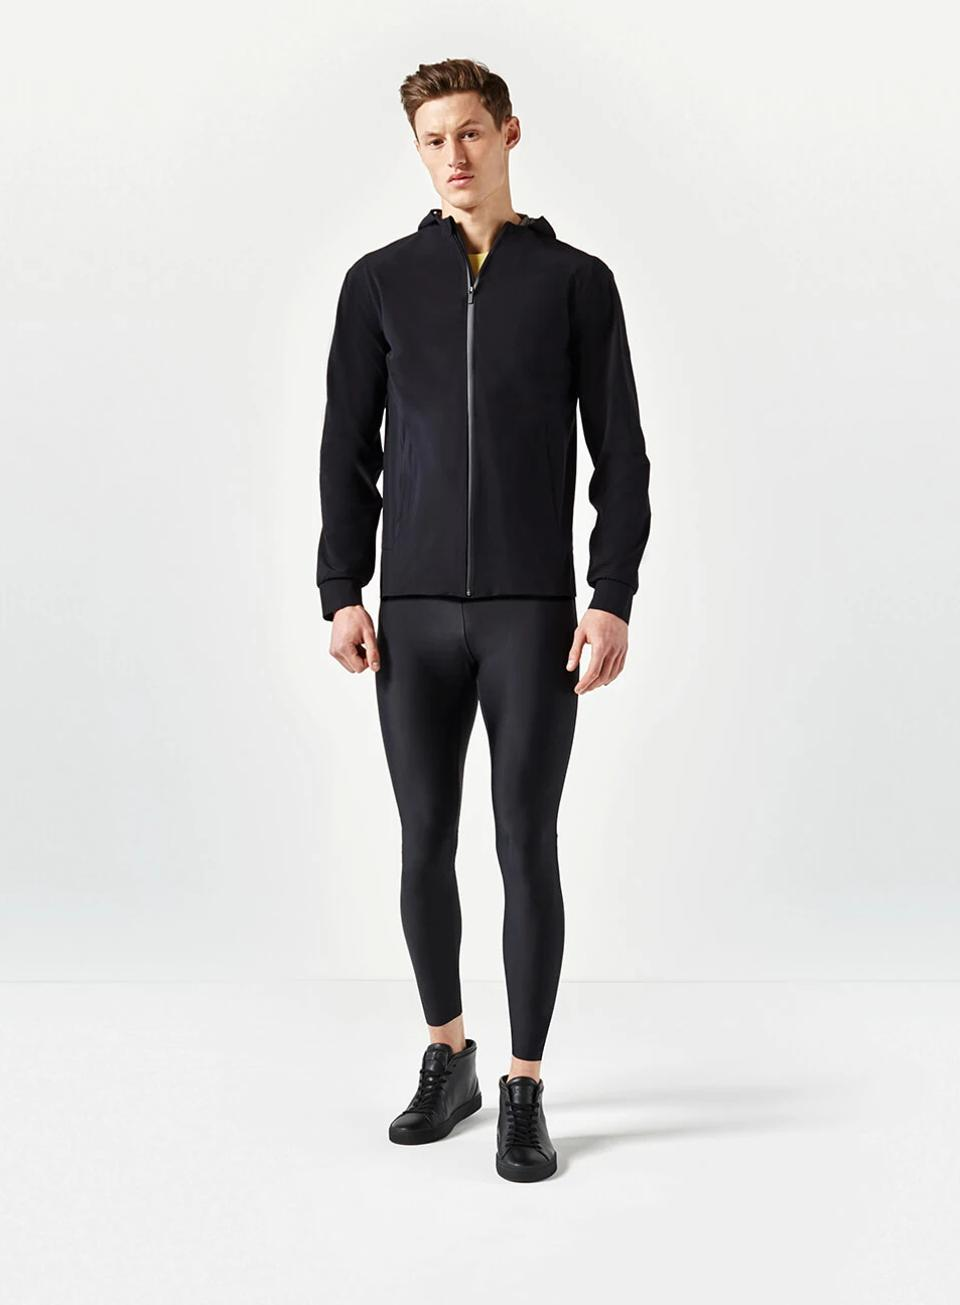 Find the German-designed, eco-sustainable Adaptive Jacket and other Aeance pieces at Future Proper, the first online boutique for premium men's activewear brands.